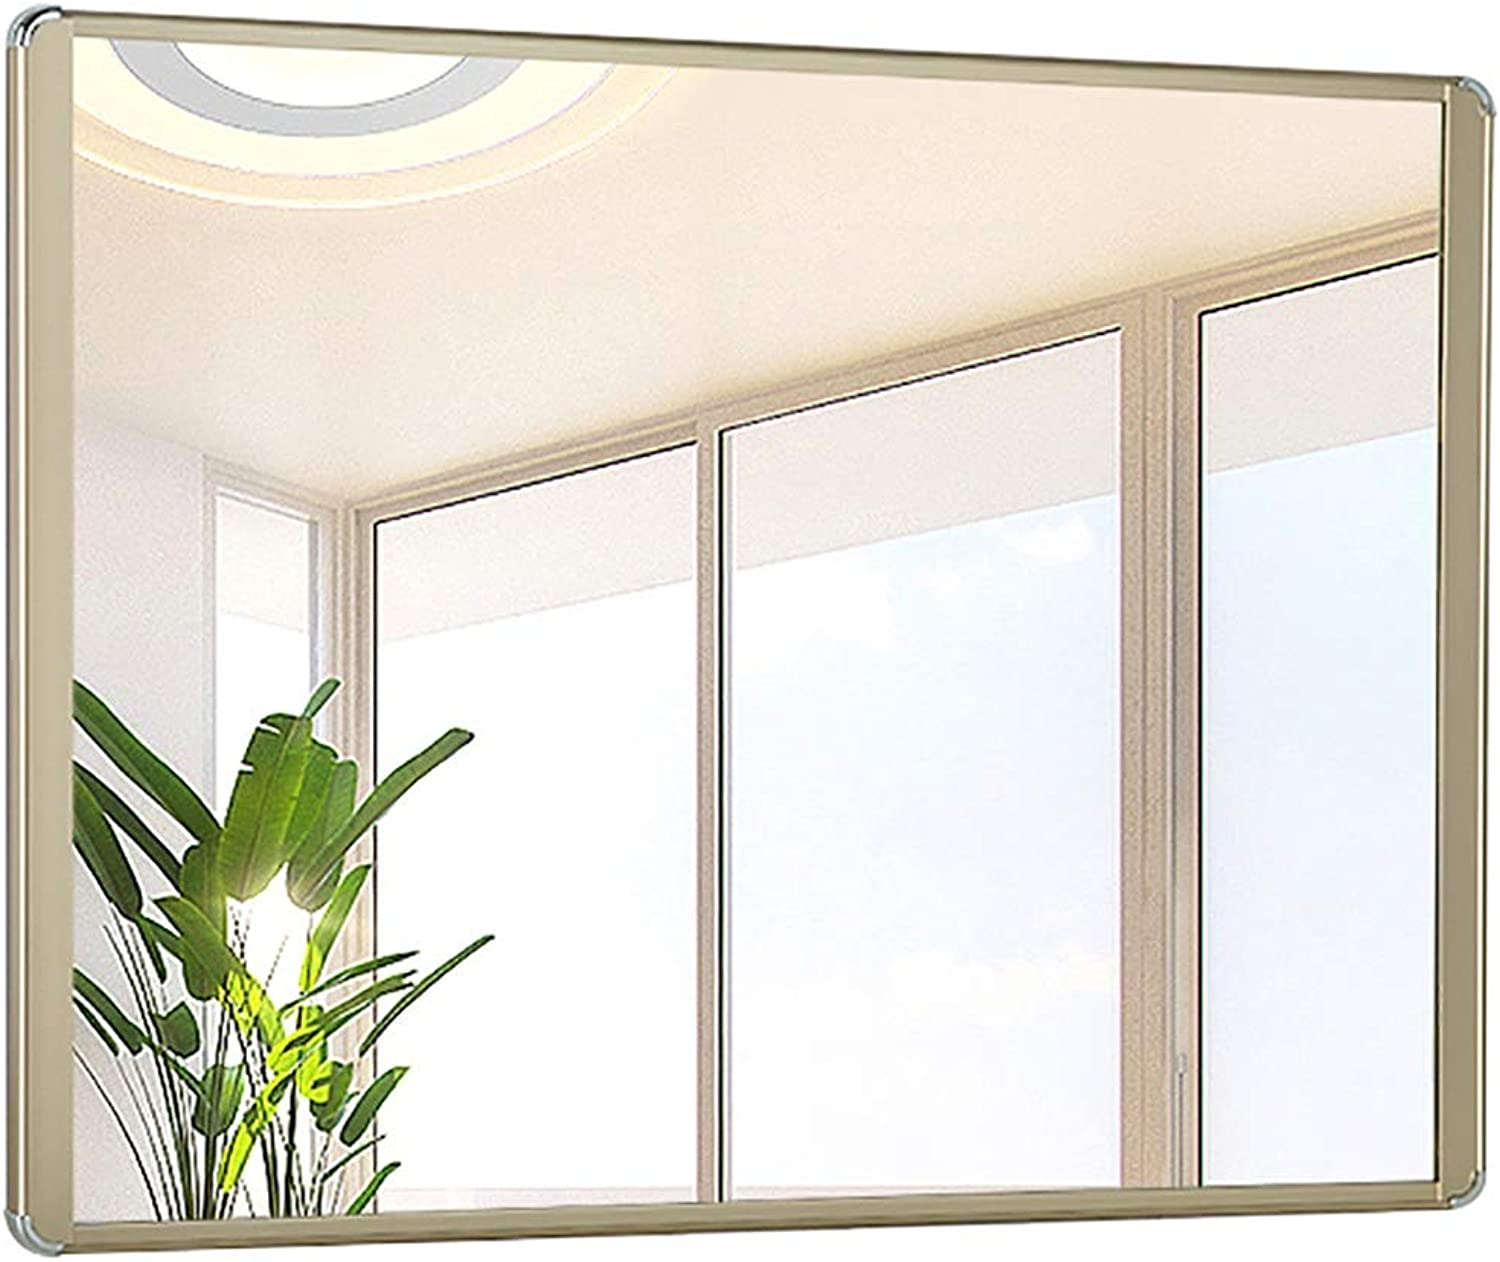 YANZHEN Mirror Wall-Mounted with Frame Bathroom Simple and Modern Make Up Durable No Deformation Aluminum Alloy, 5 color 2 Size (color   gold, Size   50x70cm)